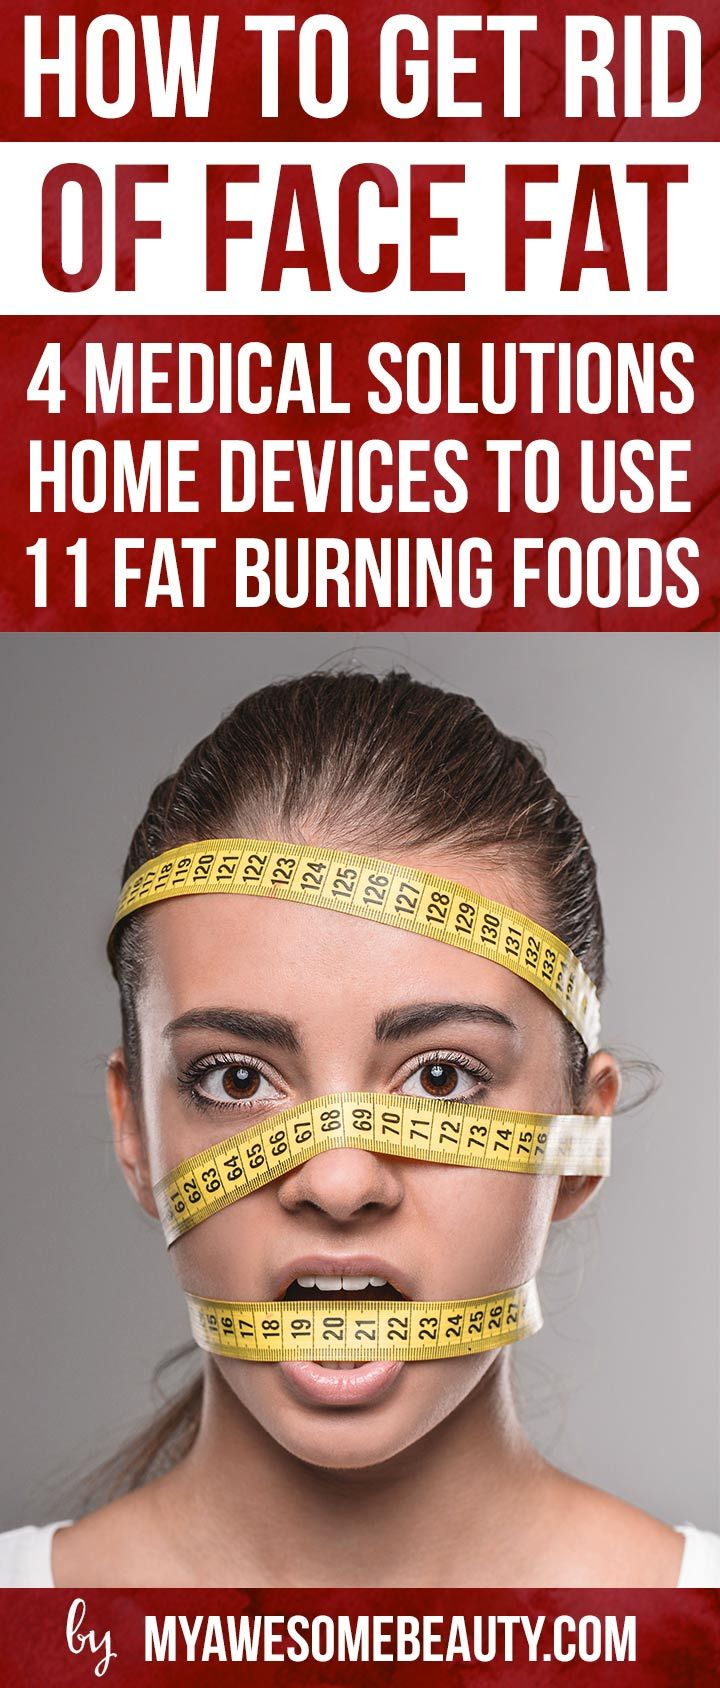 Carb Intake For Fat Loss